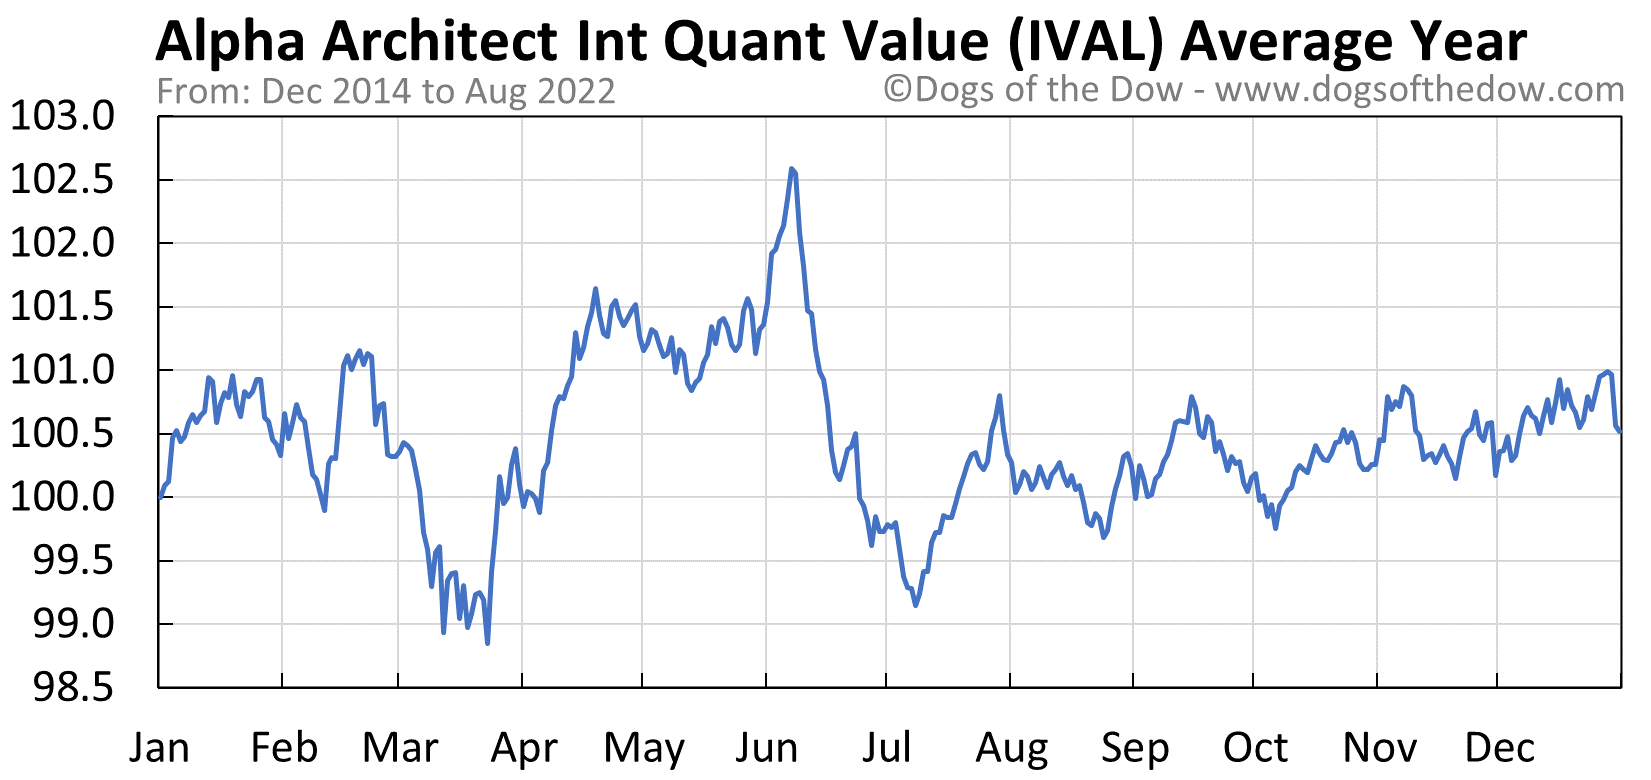 IVAL average year chart